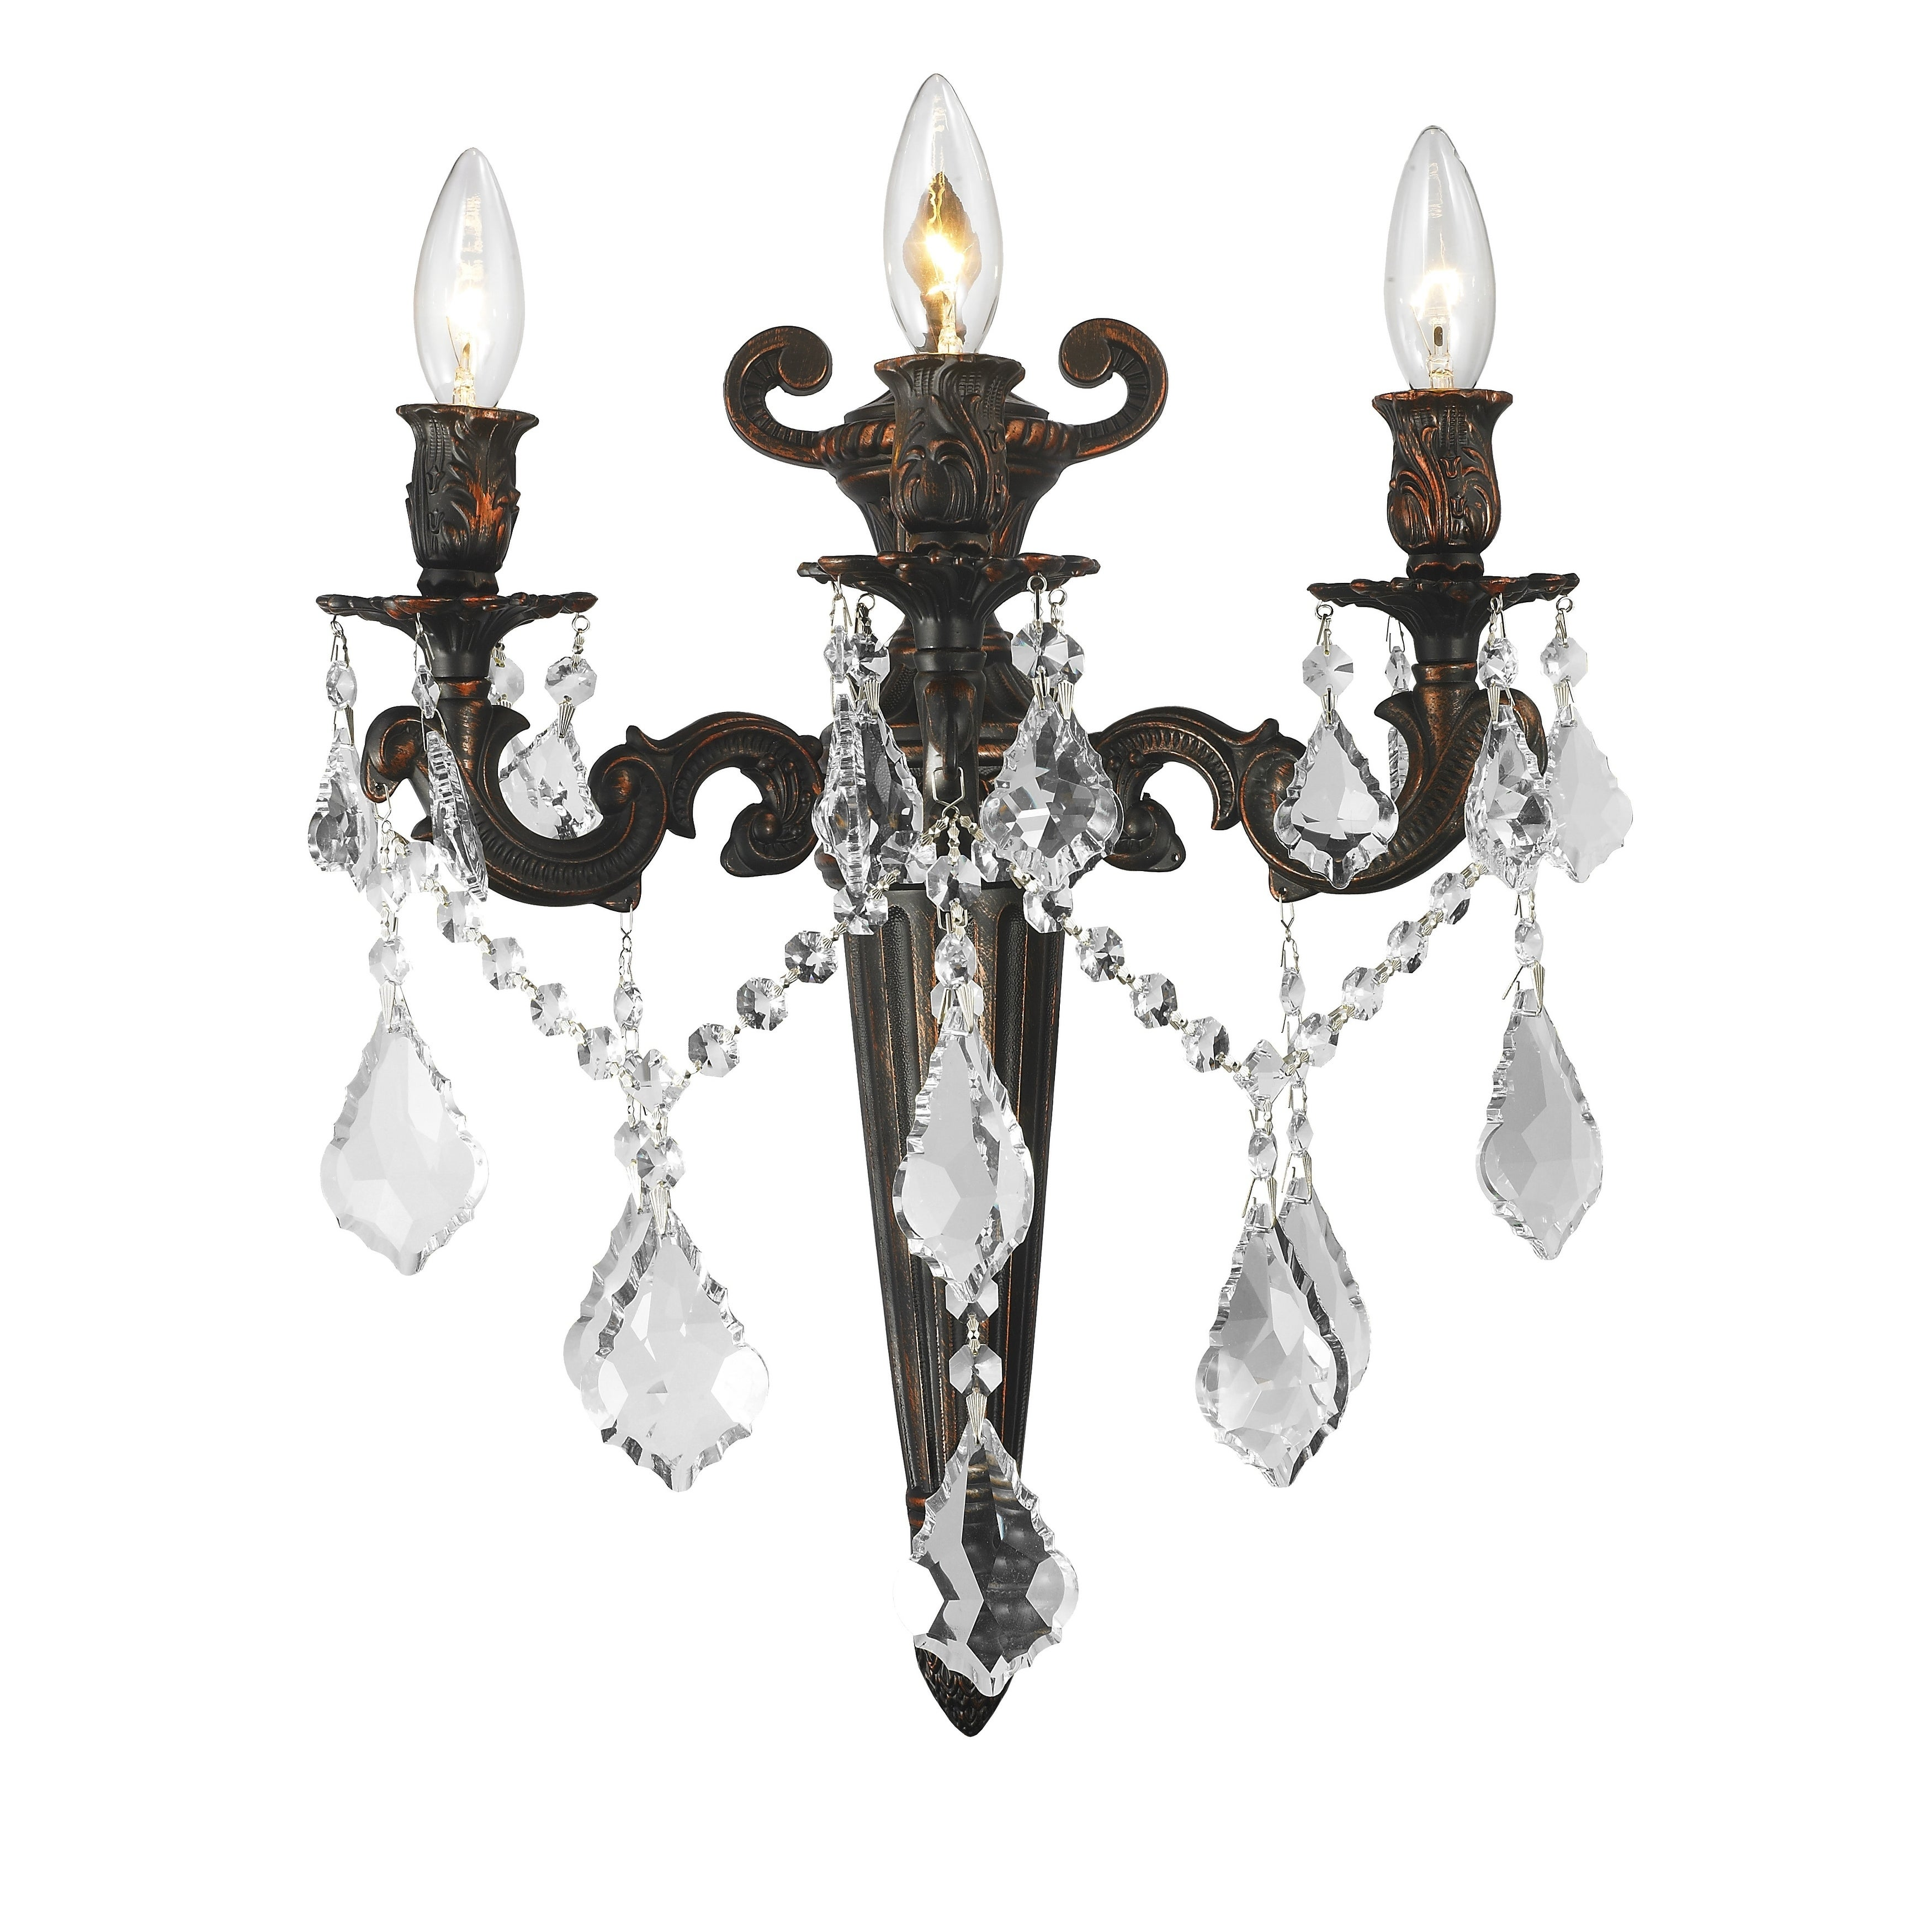 Image of: Shop French Royal 3 Light 15 Inch Dark Bronze Finish Crystal Wall Sconce Large Wall Sconce On Sale Overstock 10533291